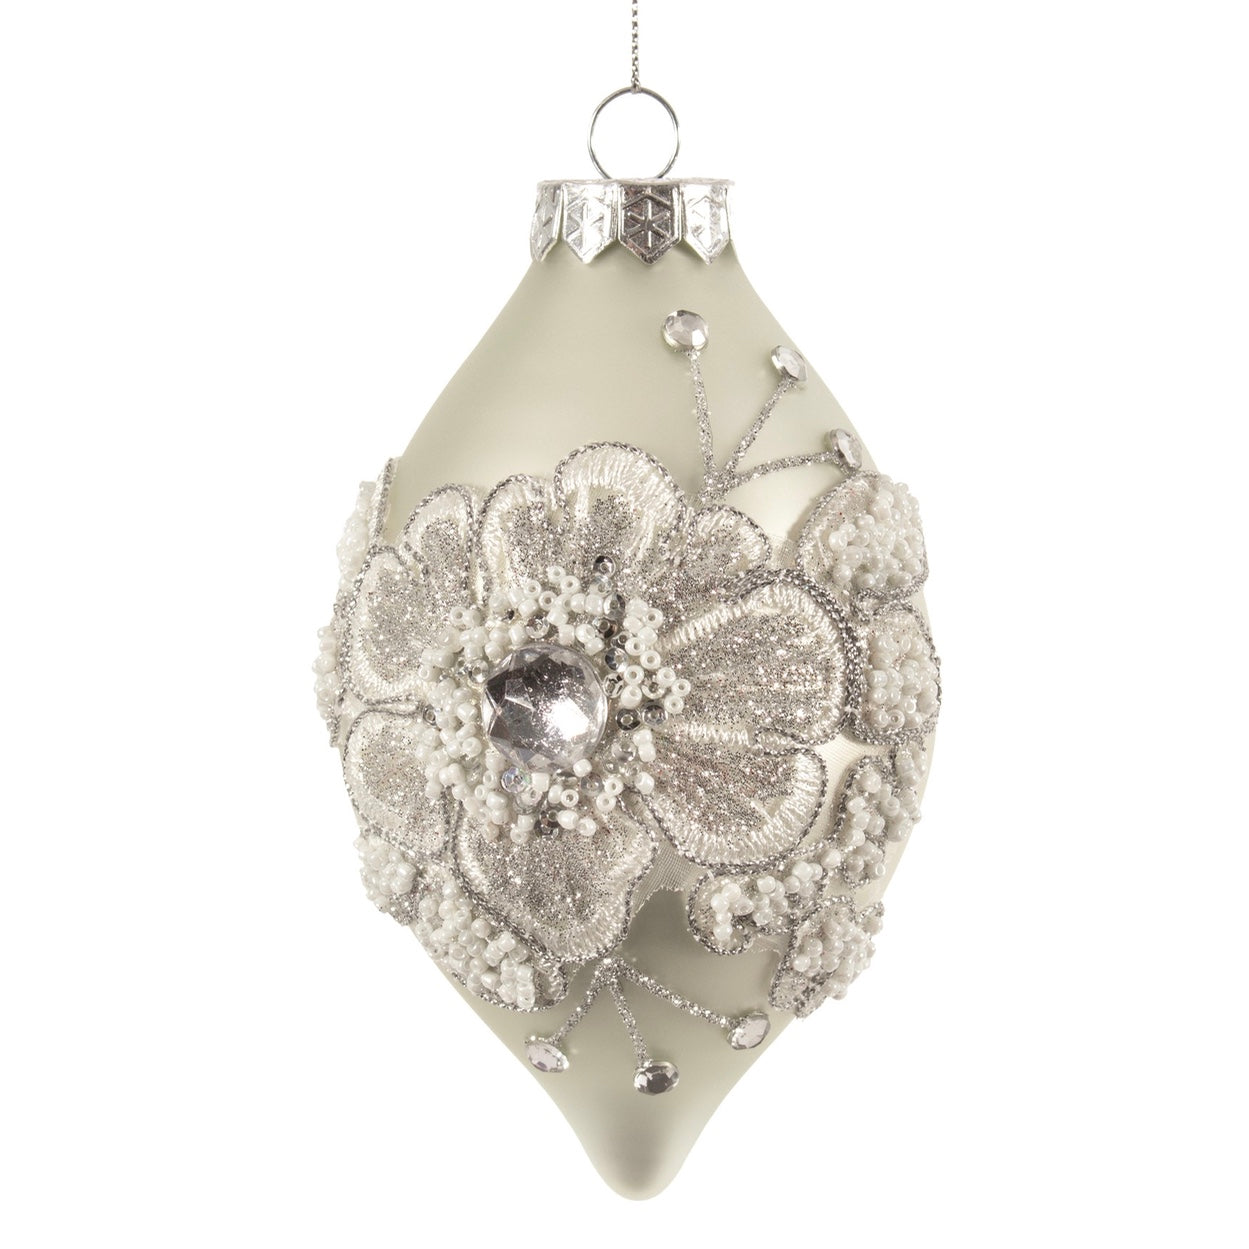 Matte Silver with Lace Flowers Glass Drop Ornament  | Putti Christmas Decorations Canada